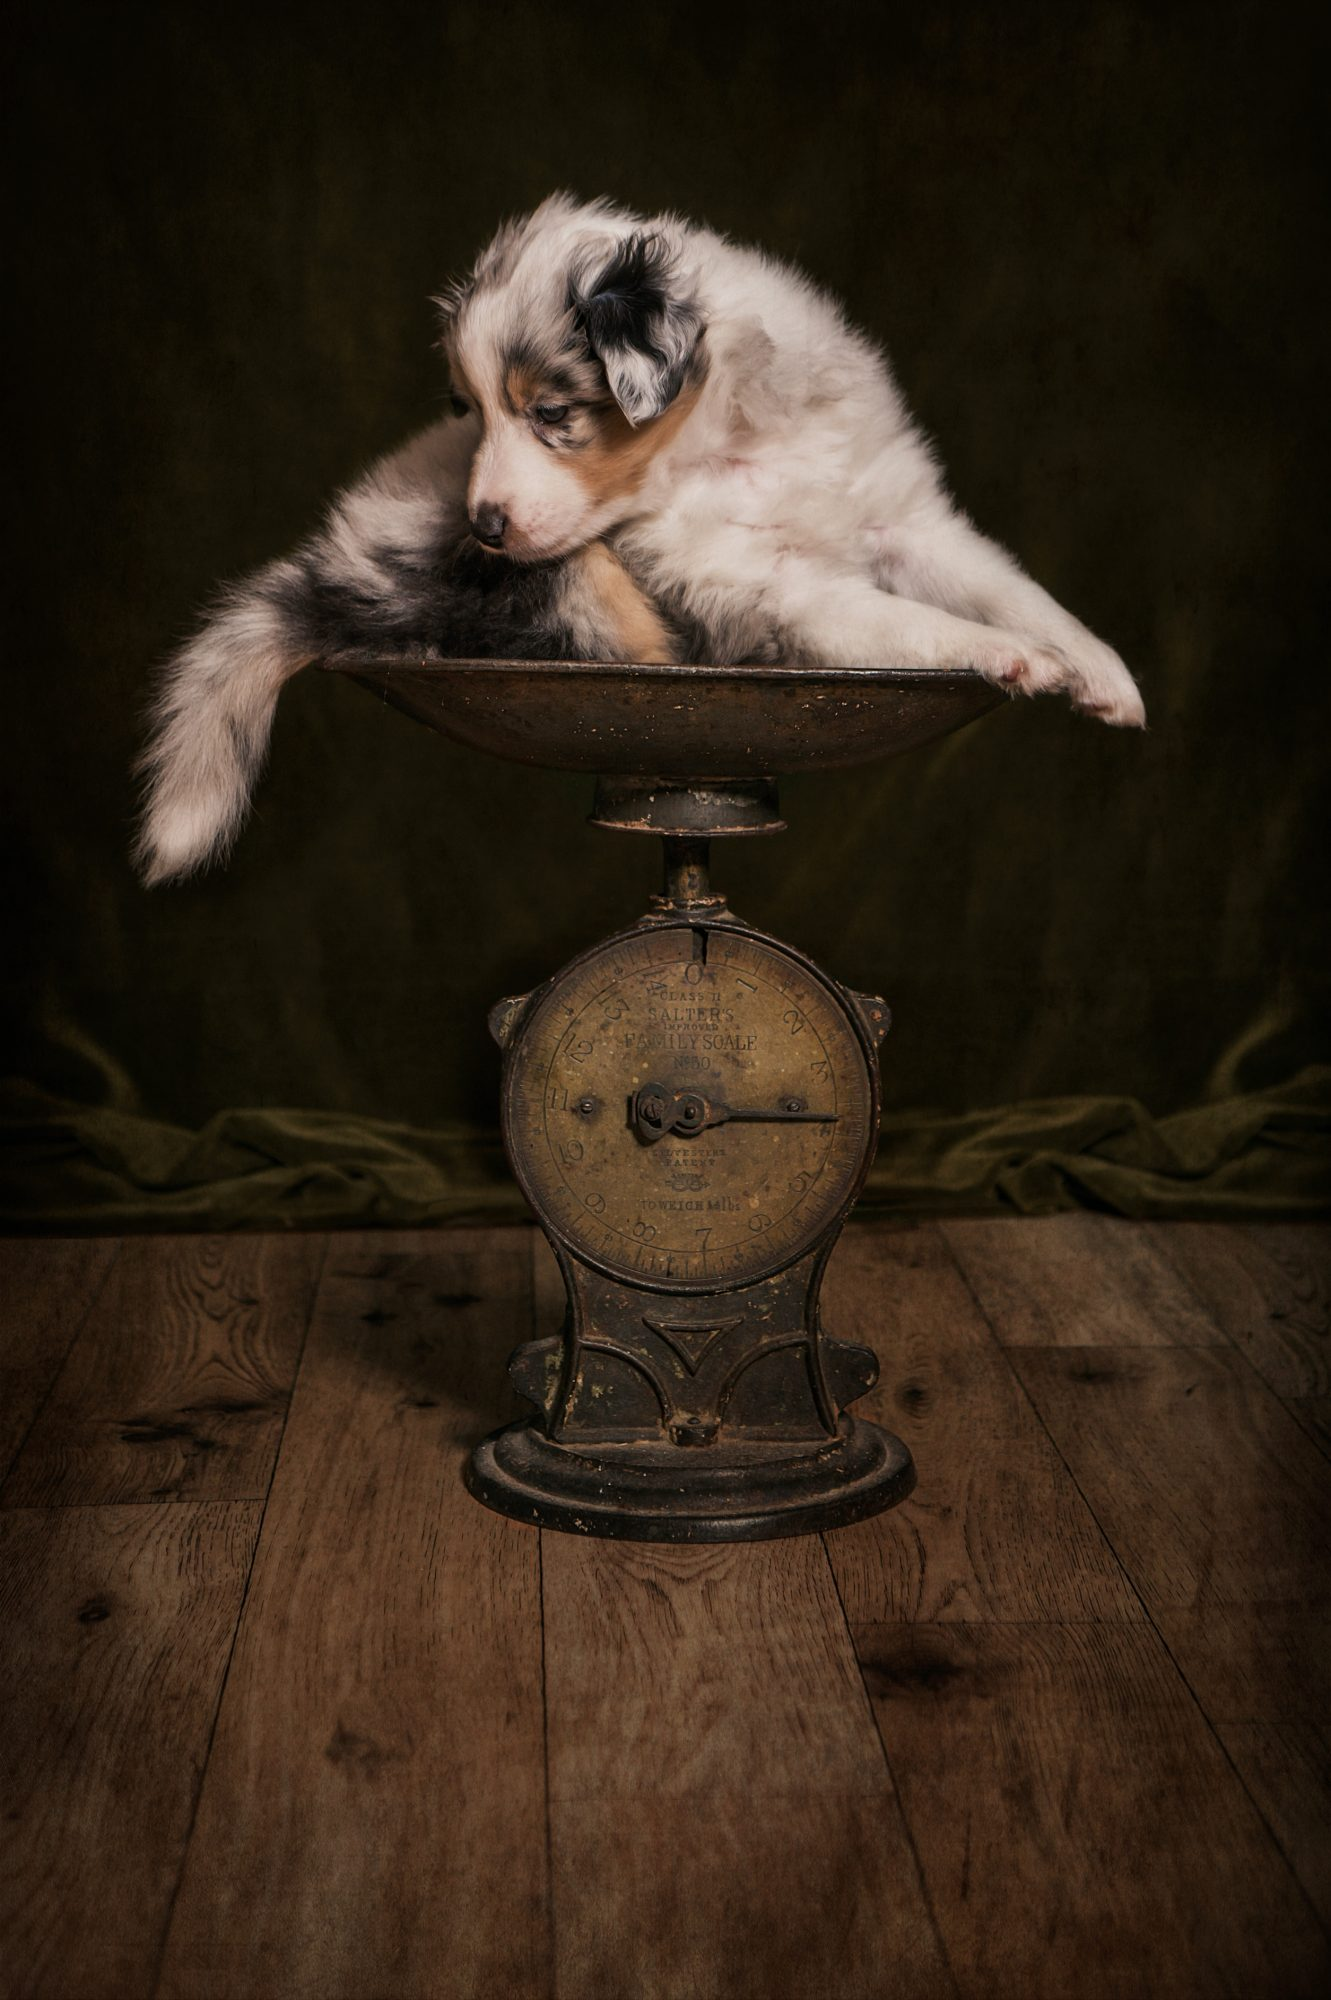 Sheltie_Puppy_Photograph_On_Scales